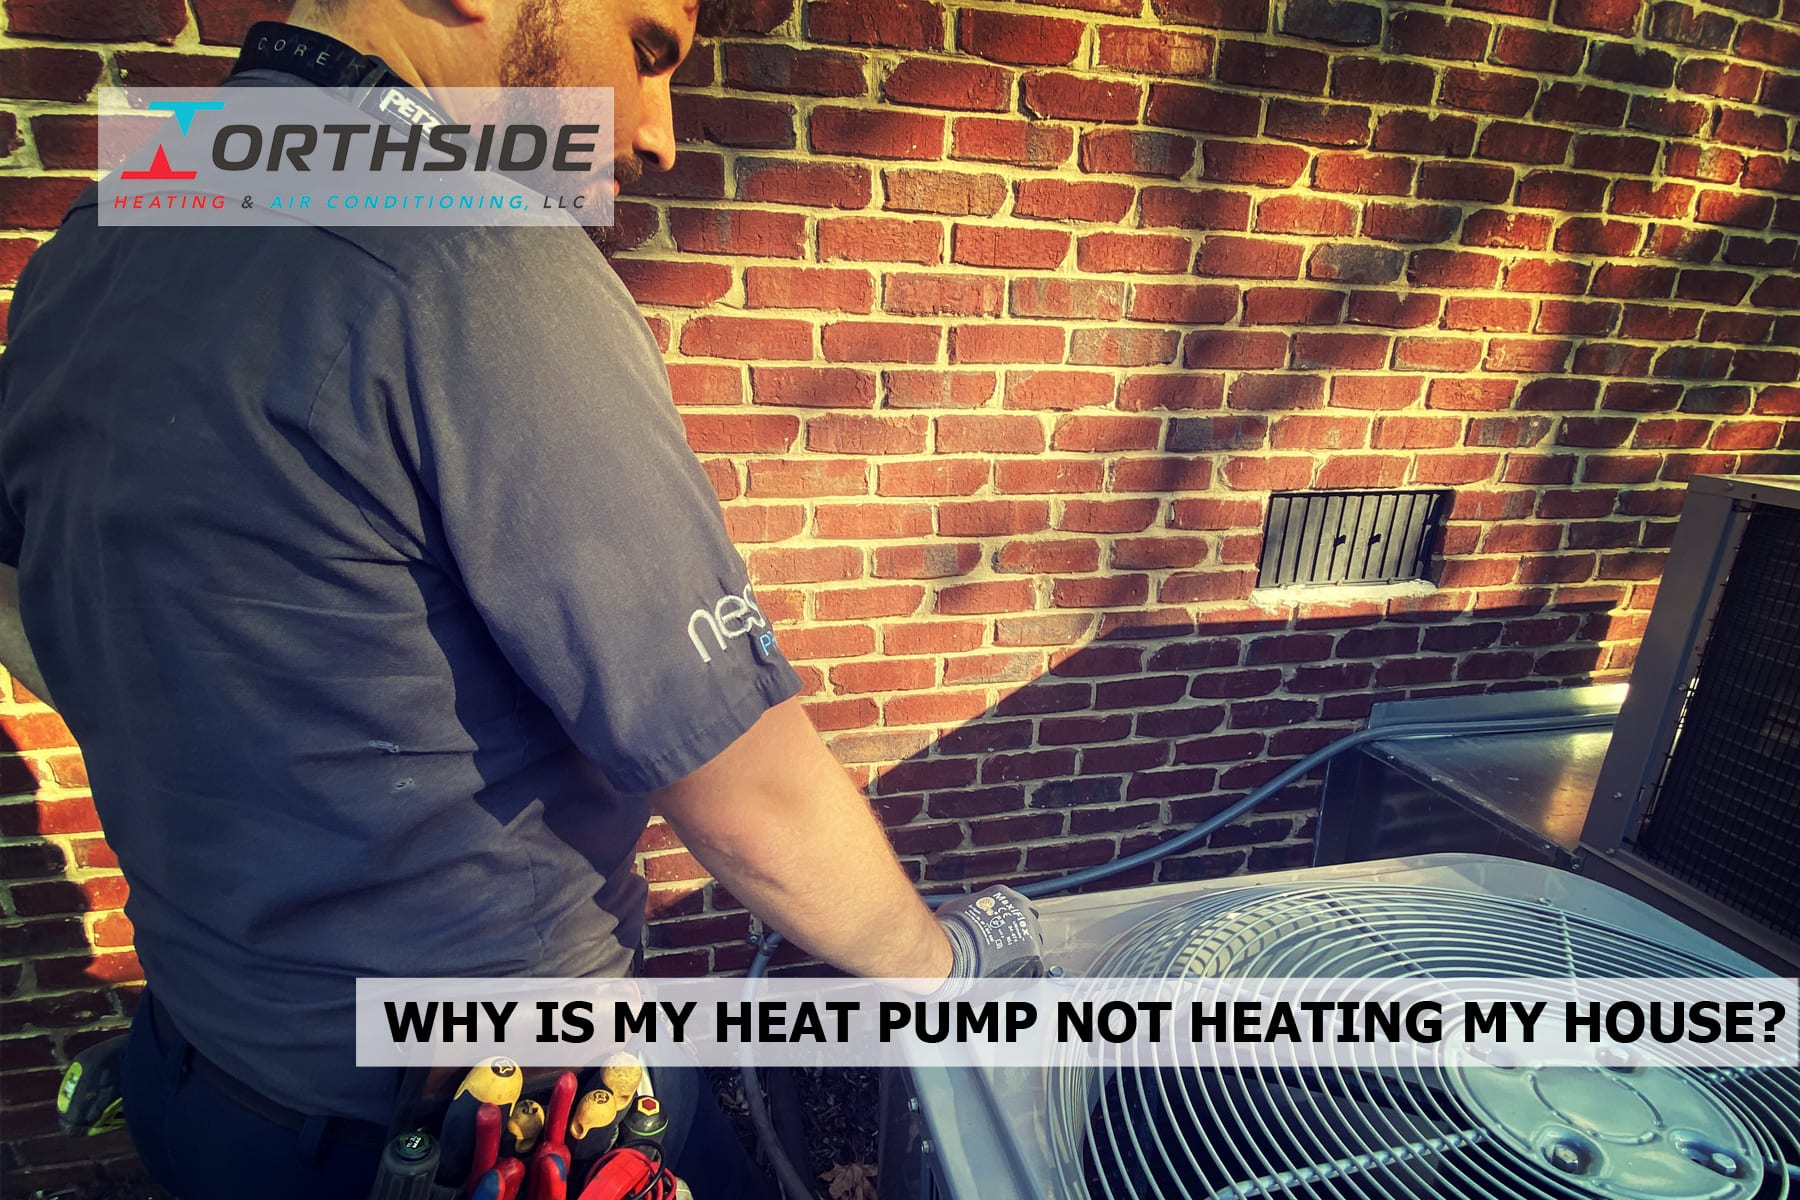 WHY IS MY HEAT PUMP NOT HEATING MY HOUSE?